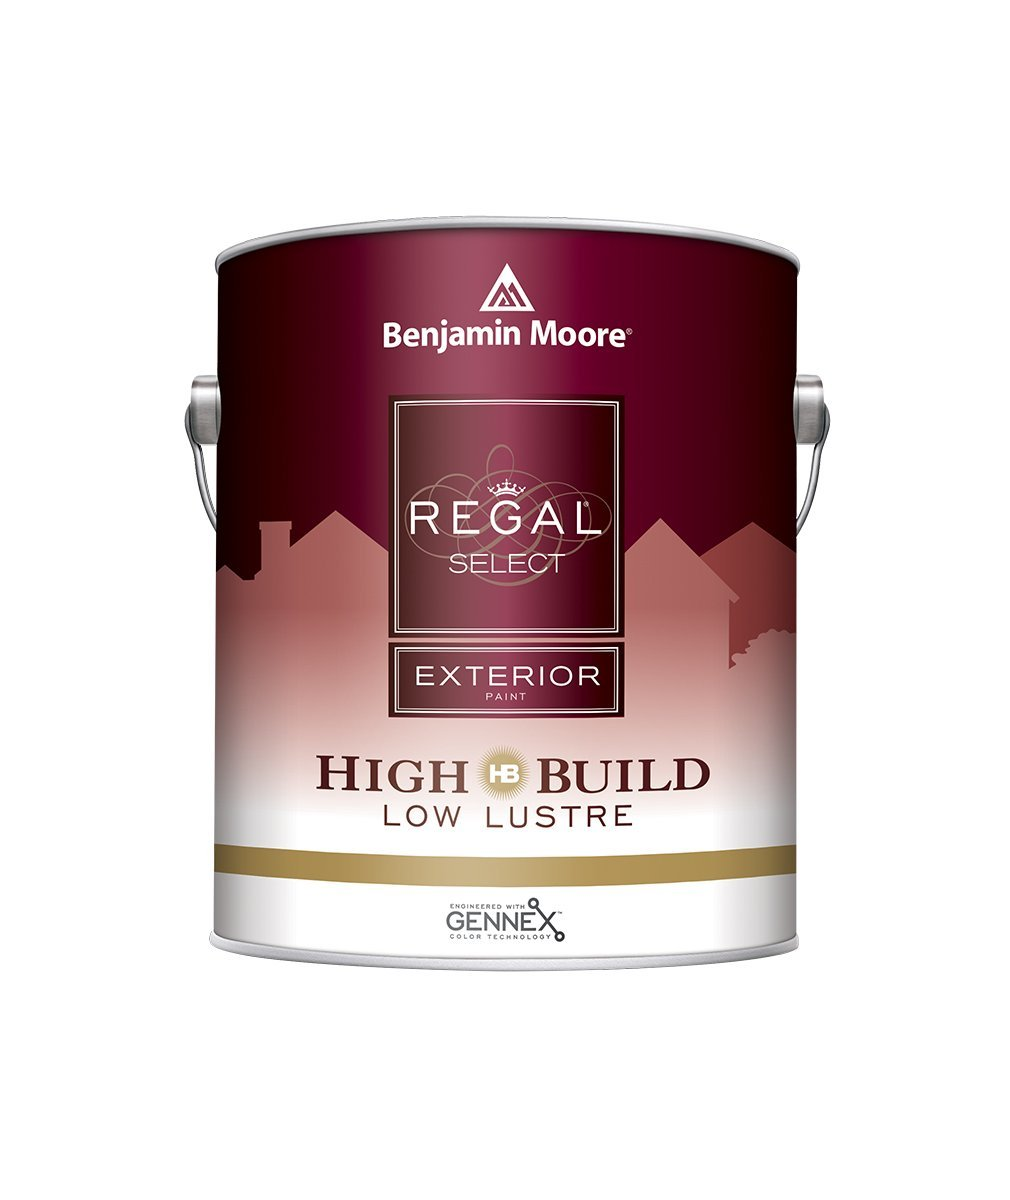 Benjamin Moore Regal Select Low Lustre Exterior Paint Gallon, available at Wallauer Paint & Design.